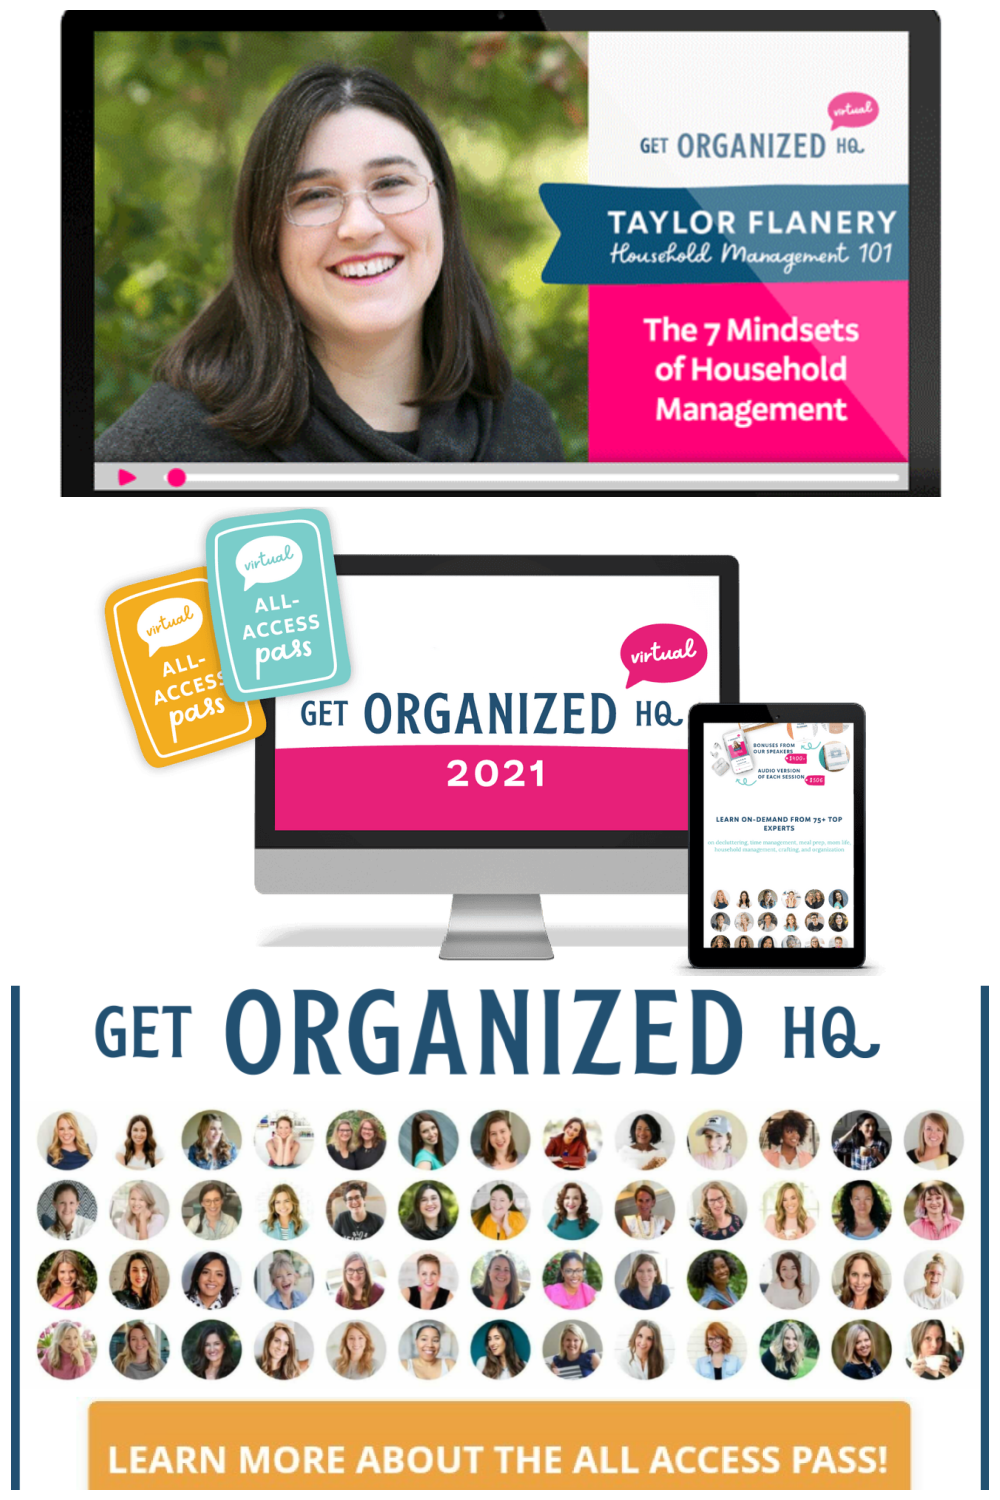 Are you ready to organize your life and streamline your home for good? If so, check out Get Organized HQ and get access to over 70 practical workshops for a stress-free home, including a workshop from me, Taylor!